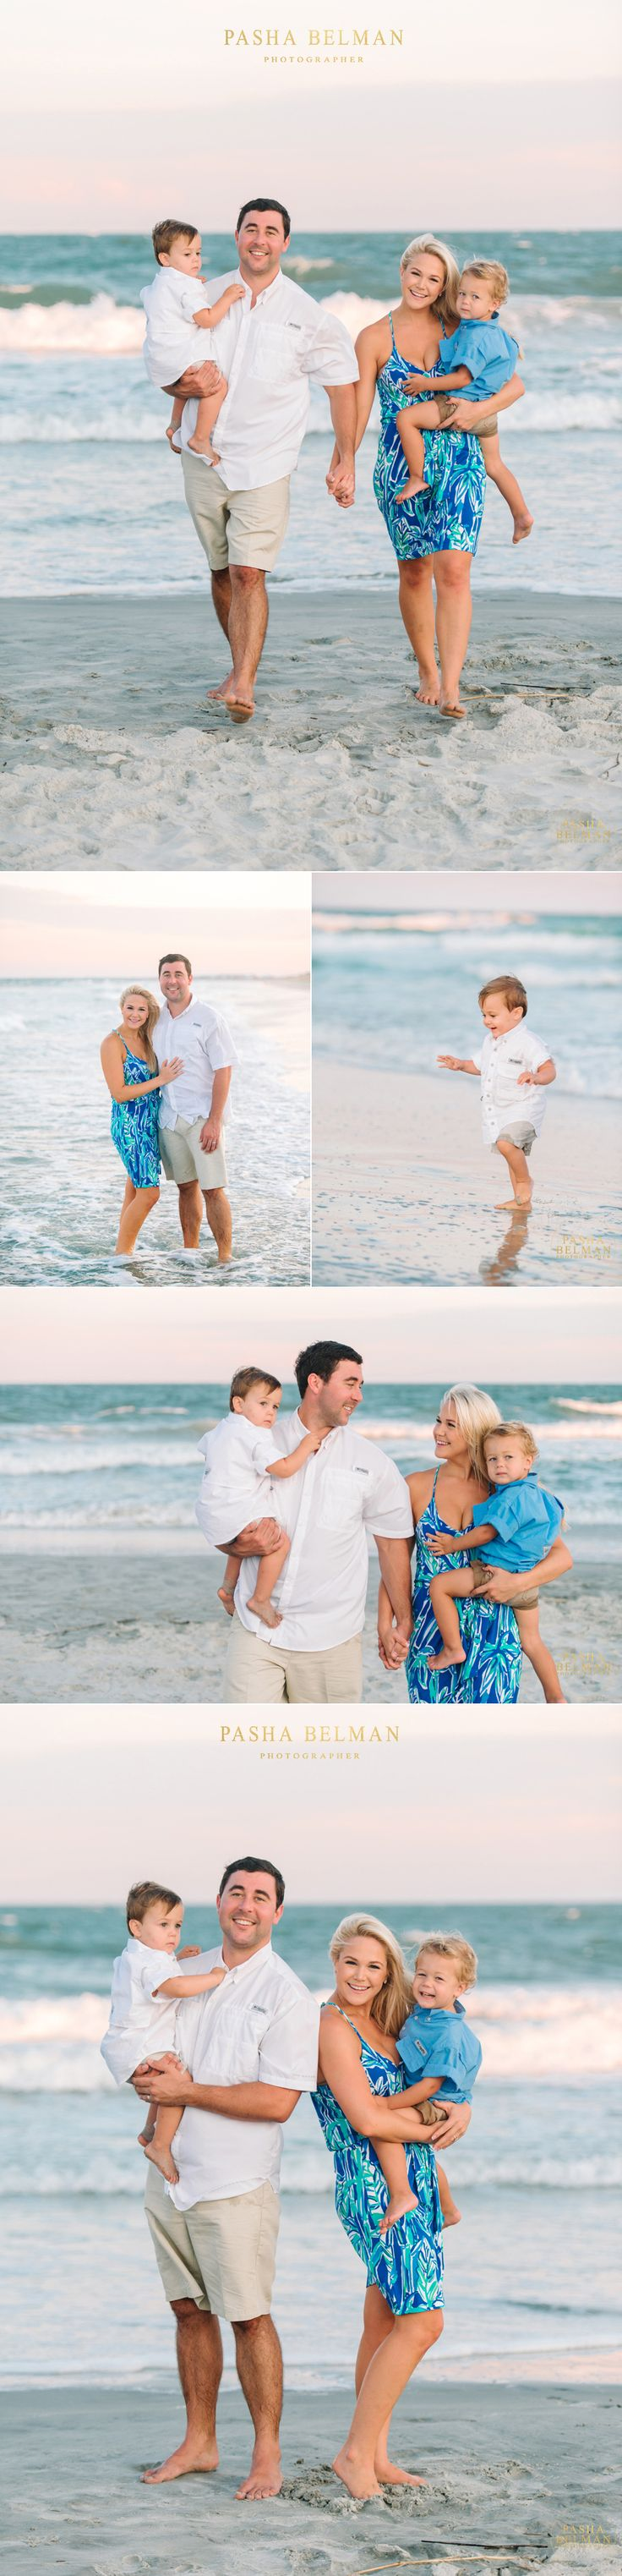 Family Pictures Family Photography Ideas at the beach in Myrtle Beach | Pawleys Island | Murrells Inlet | Pasha Belman Photography | www.pashabelman.com